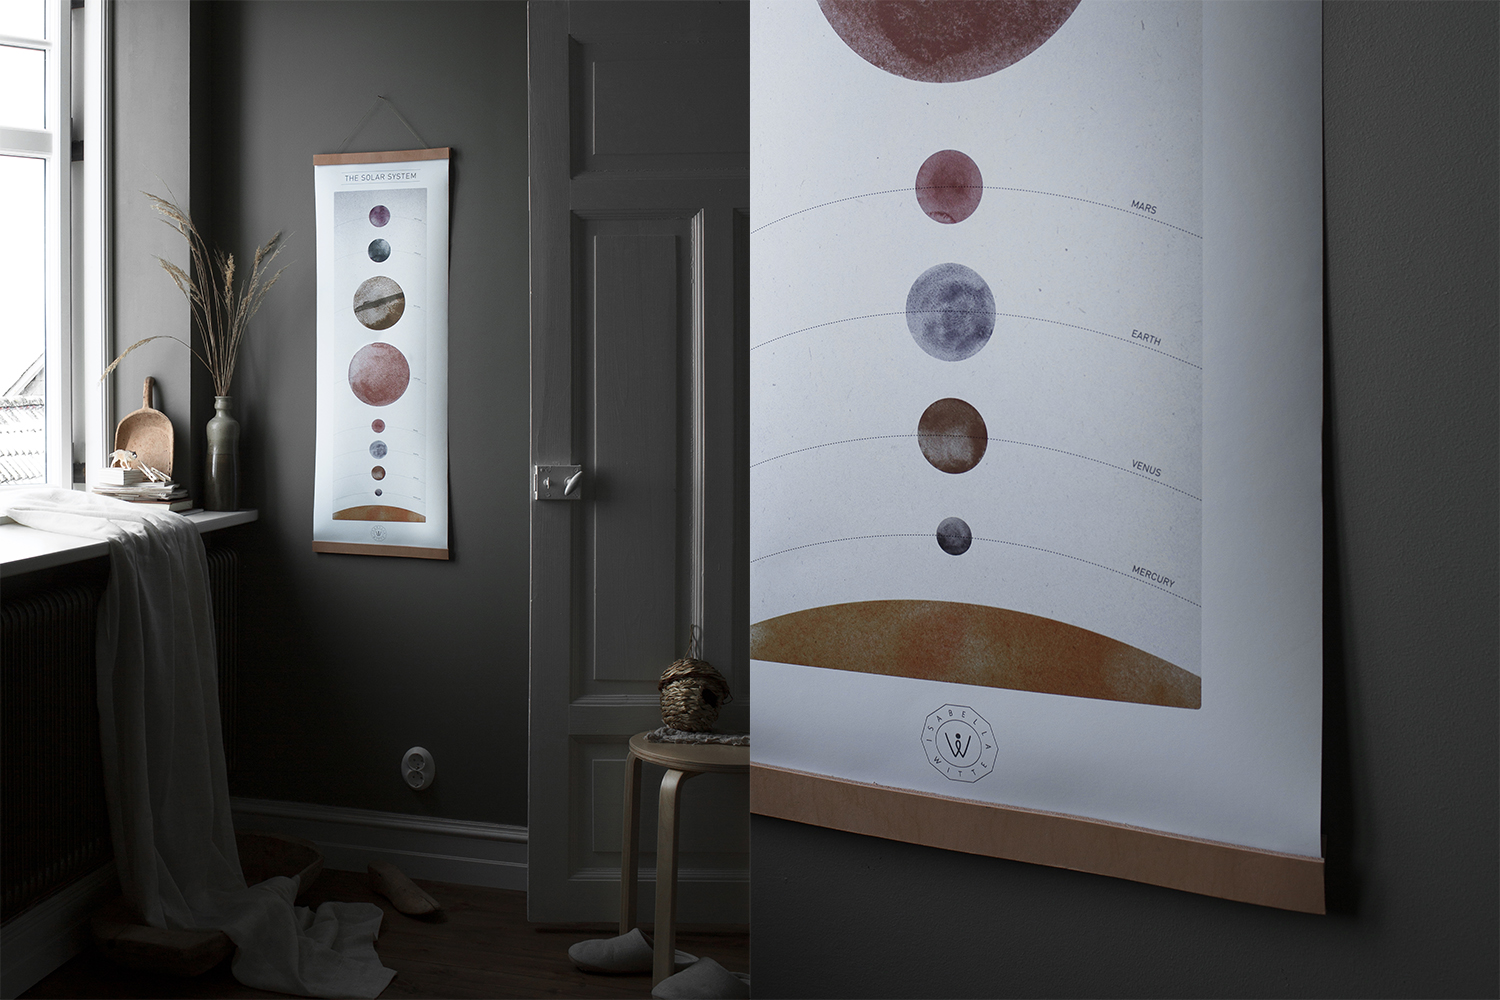 ISABELLA WITTE | THE SOLAR SYSTEM